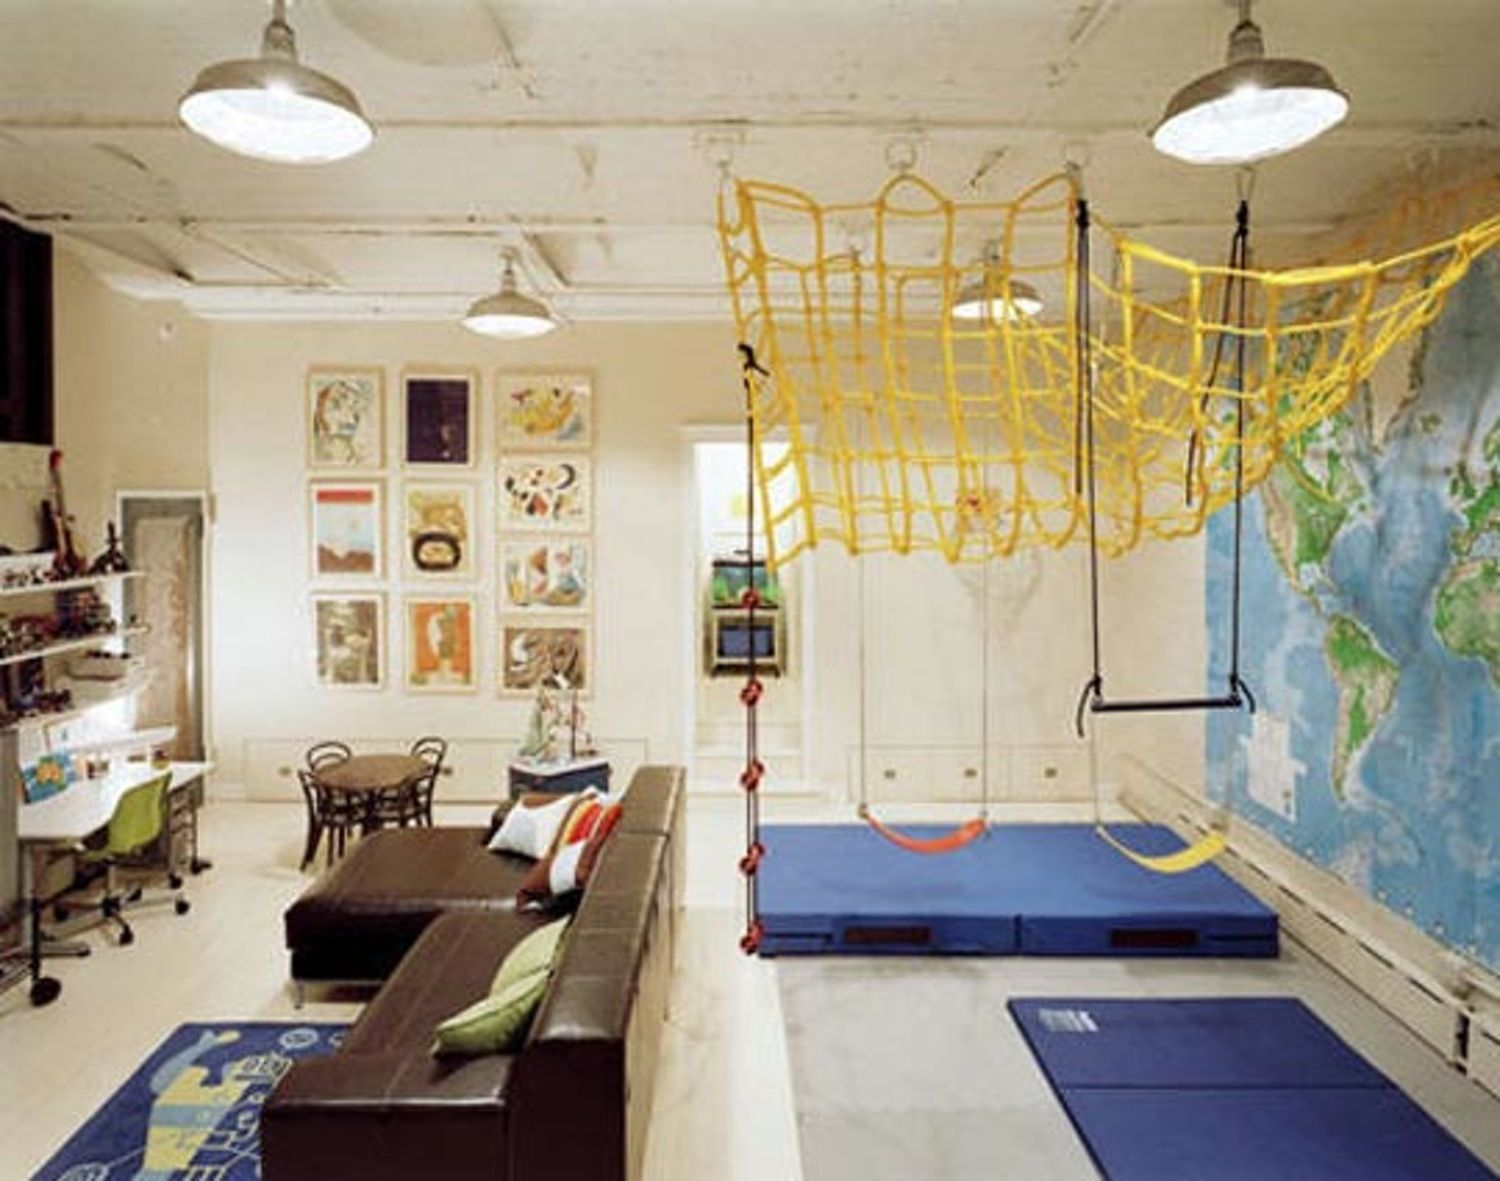 Children\'s Playroom in a Loft | Playrooms, Lofts and House